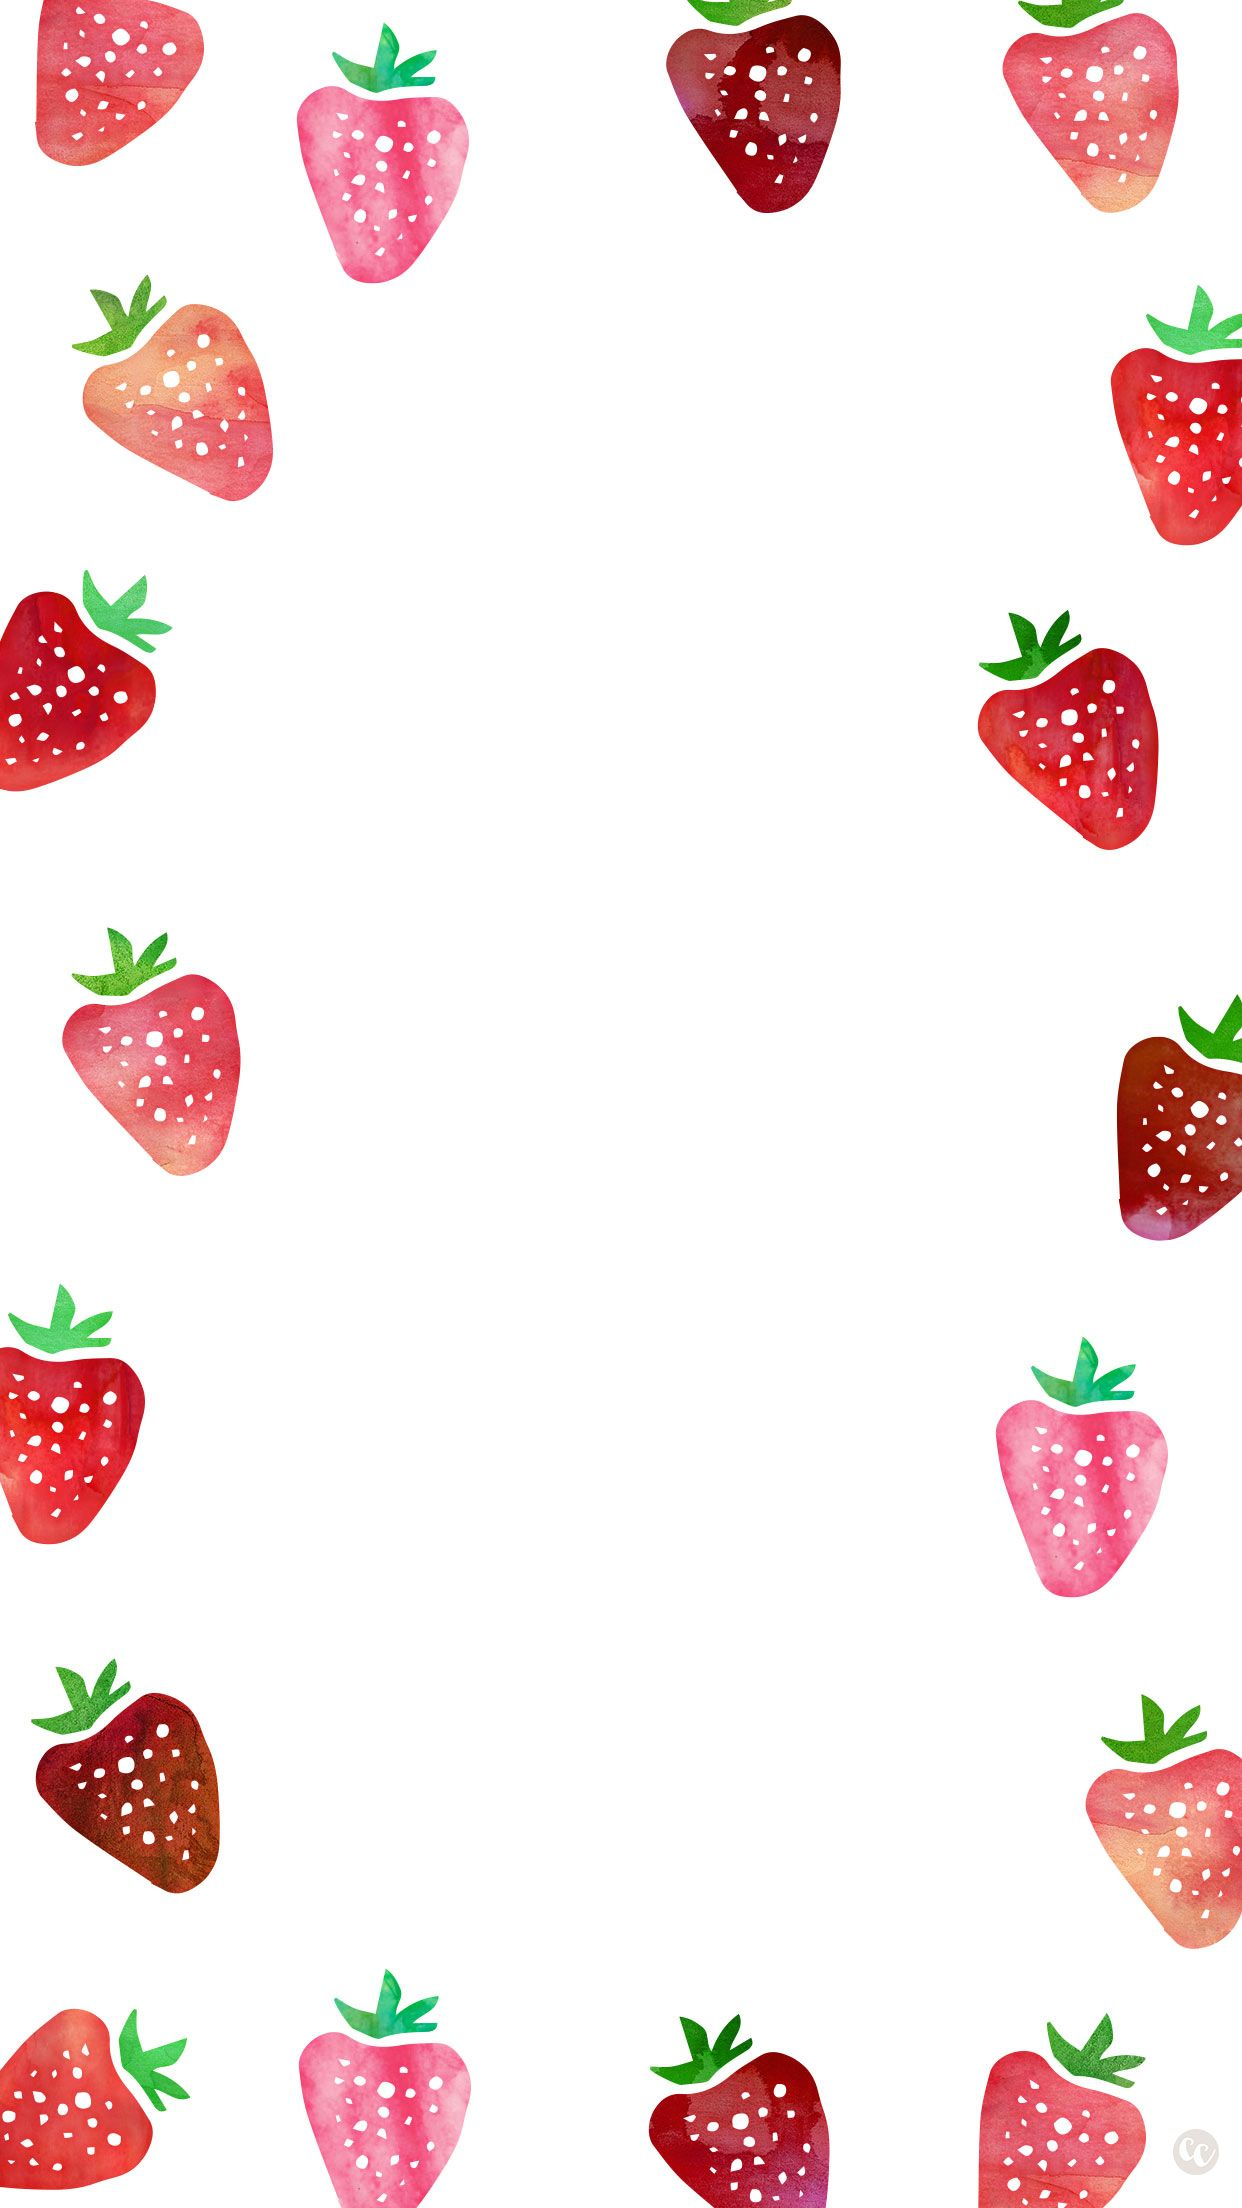 Dress Up Your Smartphone With This Cute Strawberry Wallpaper Also Available For Desktop And IPad Download Here